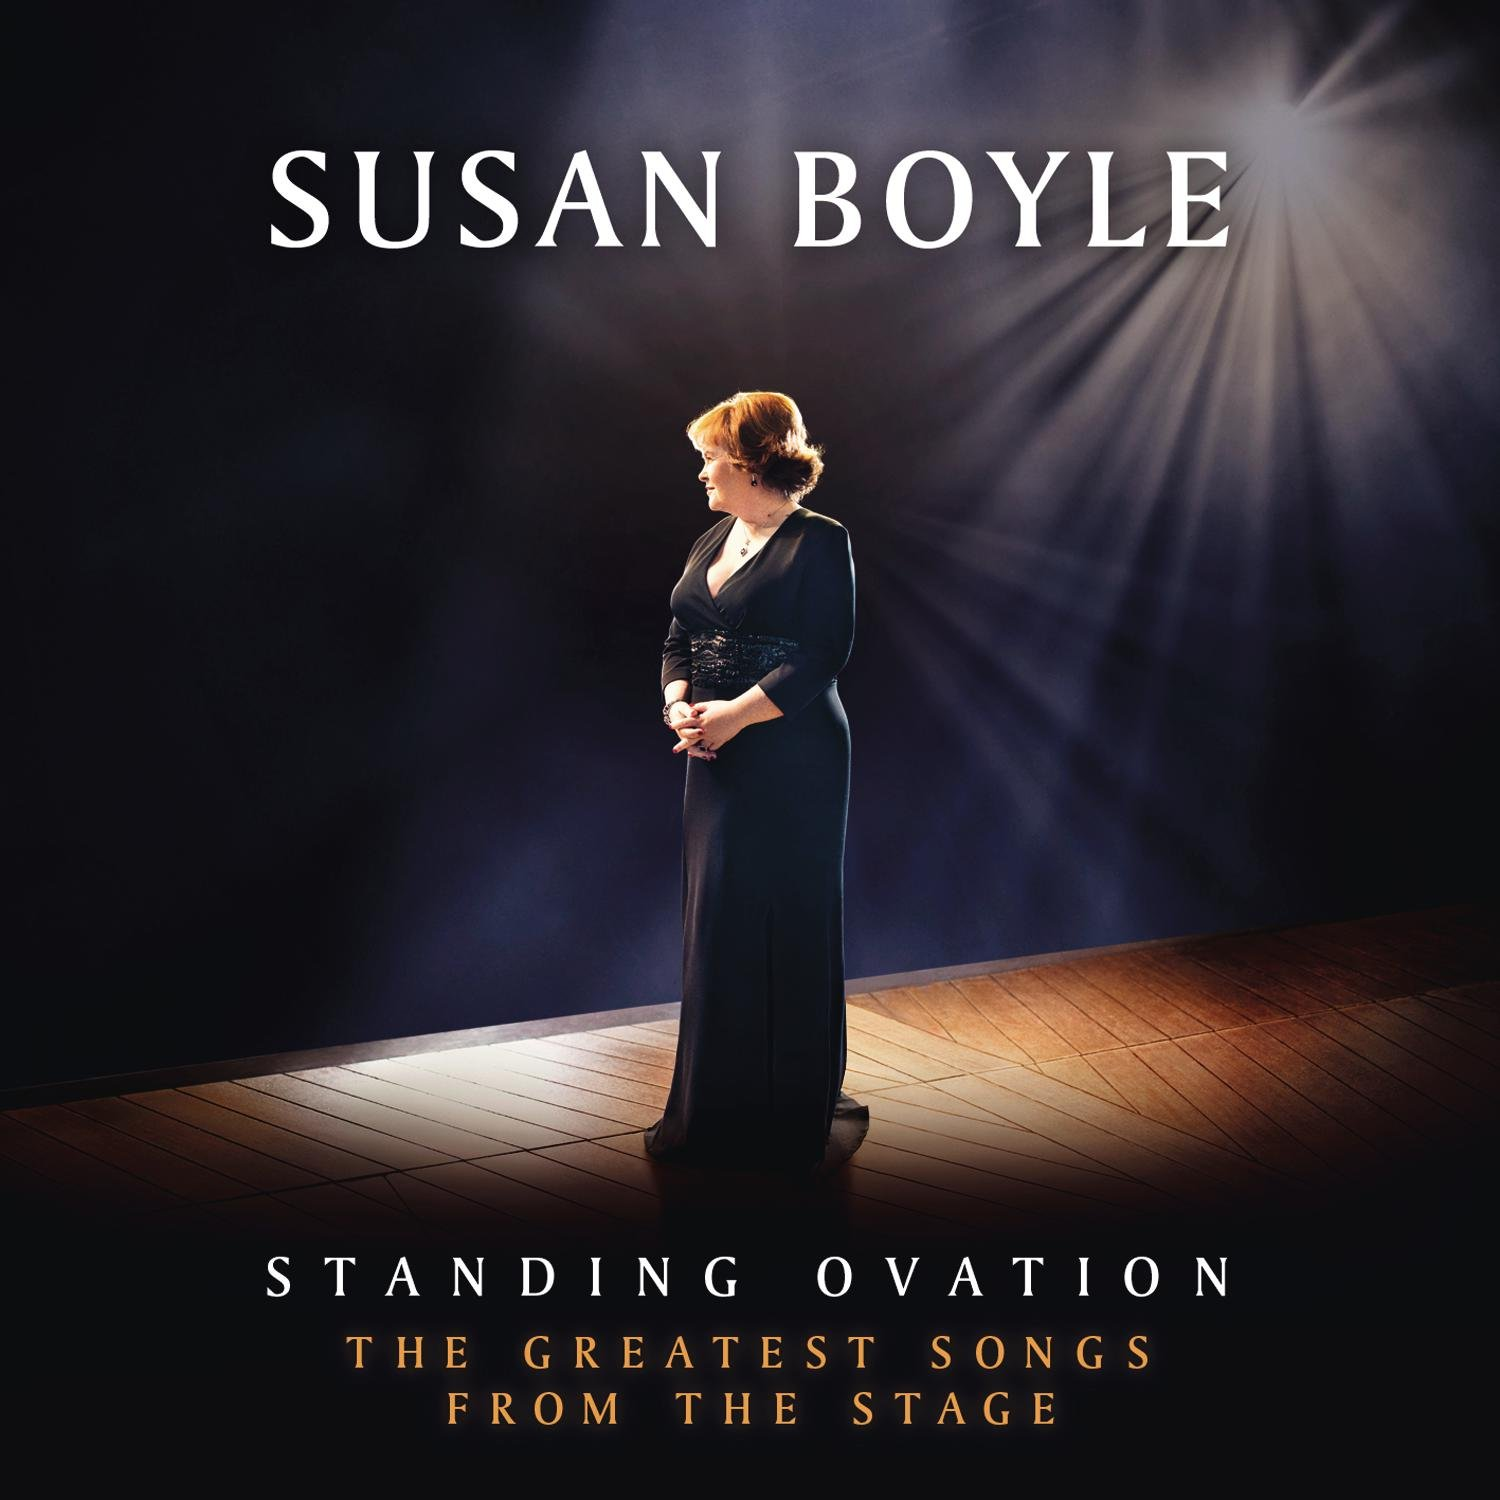 Standing Ovation: The Greatest Songs From The Stage by Syco Music